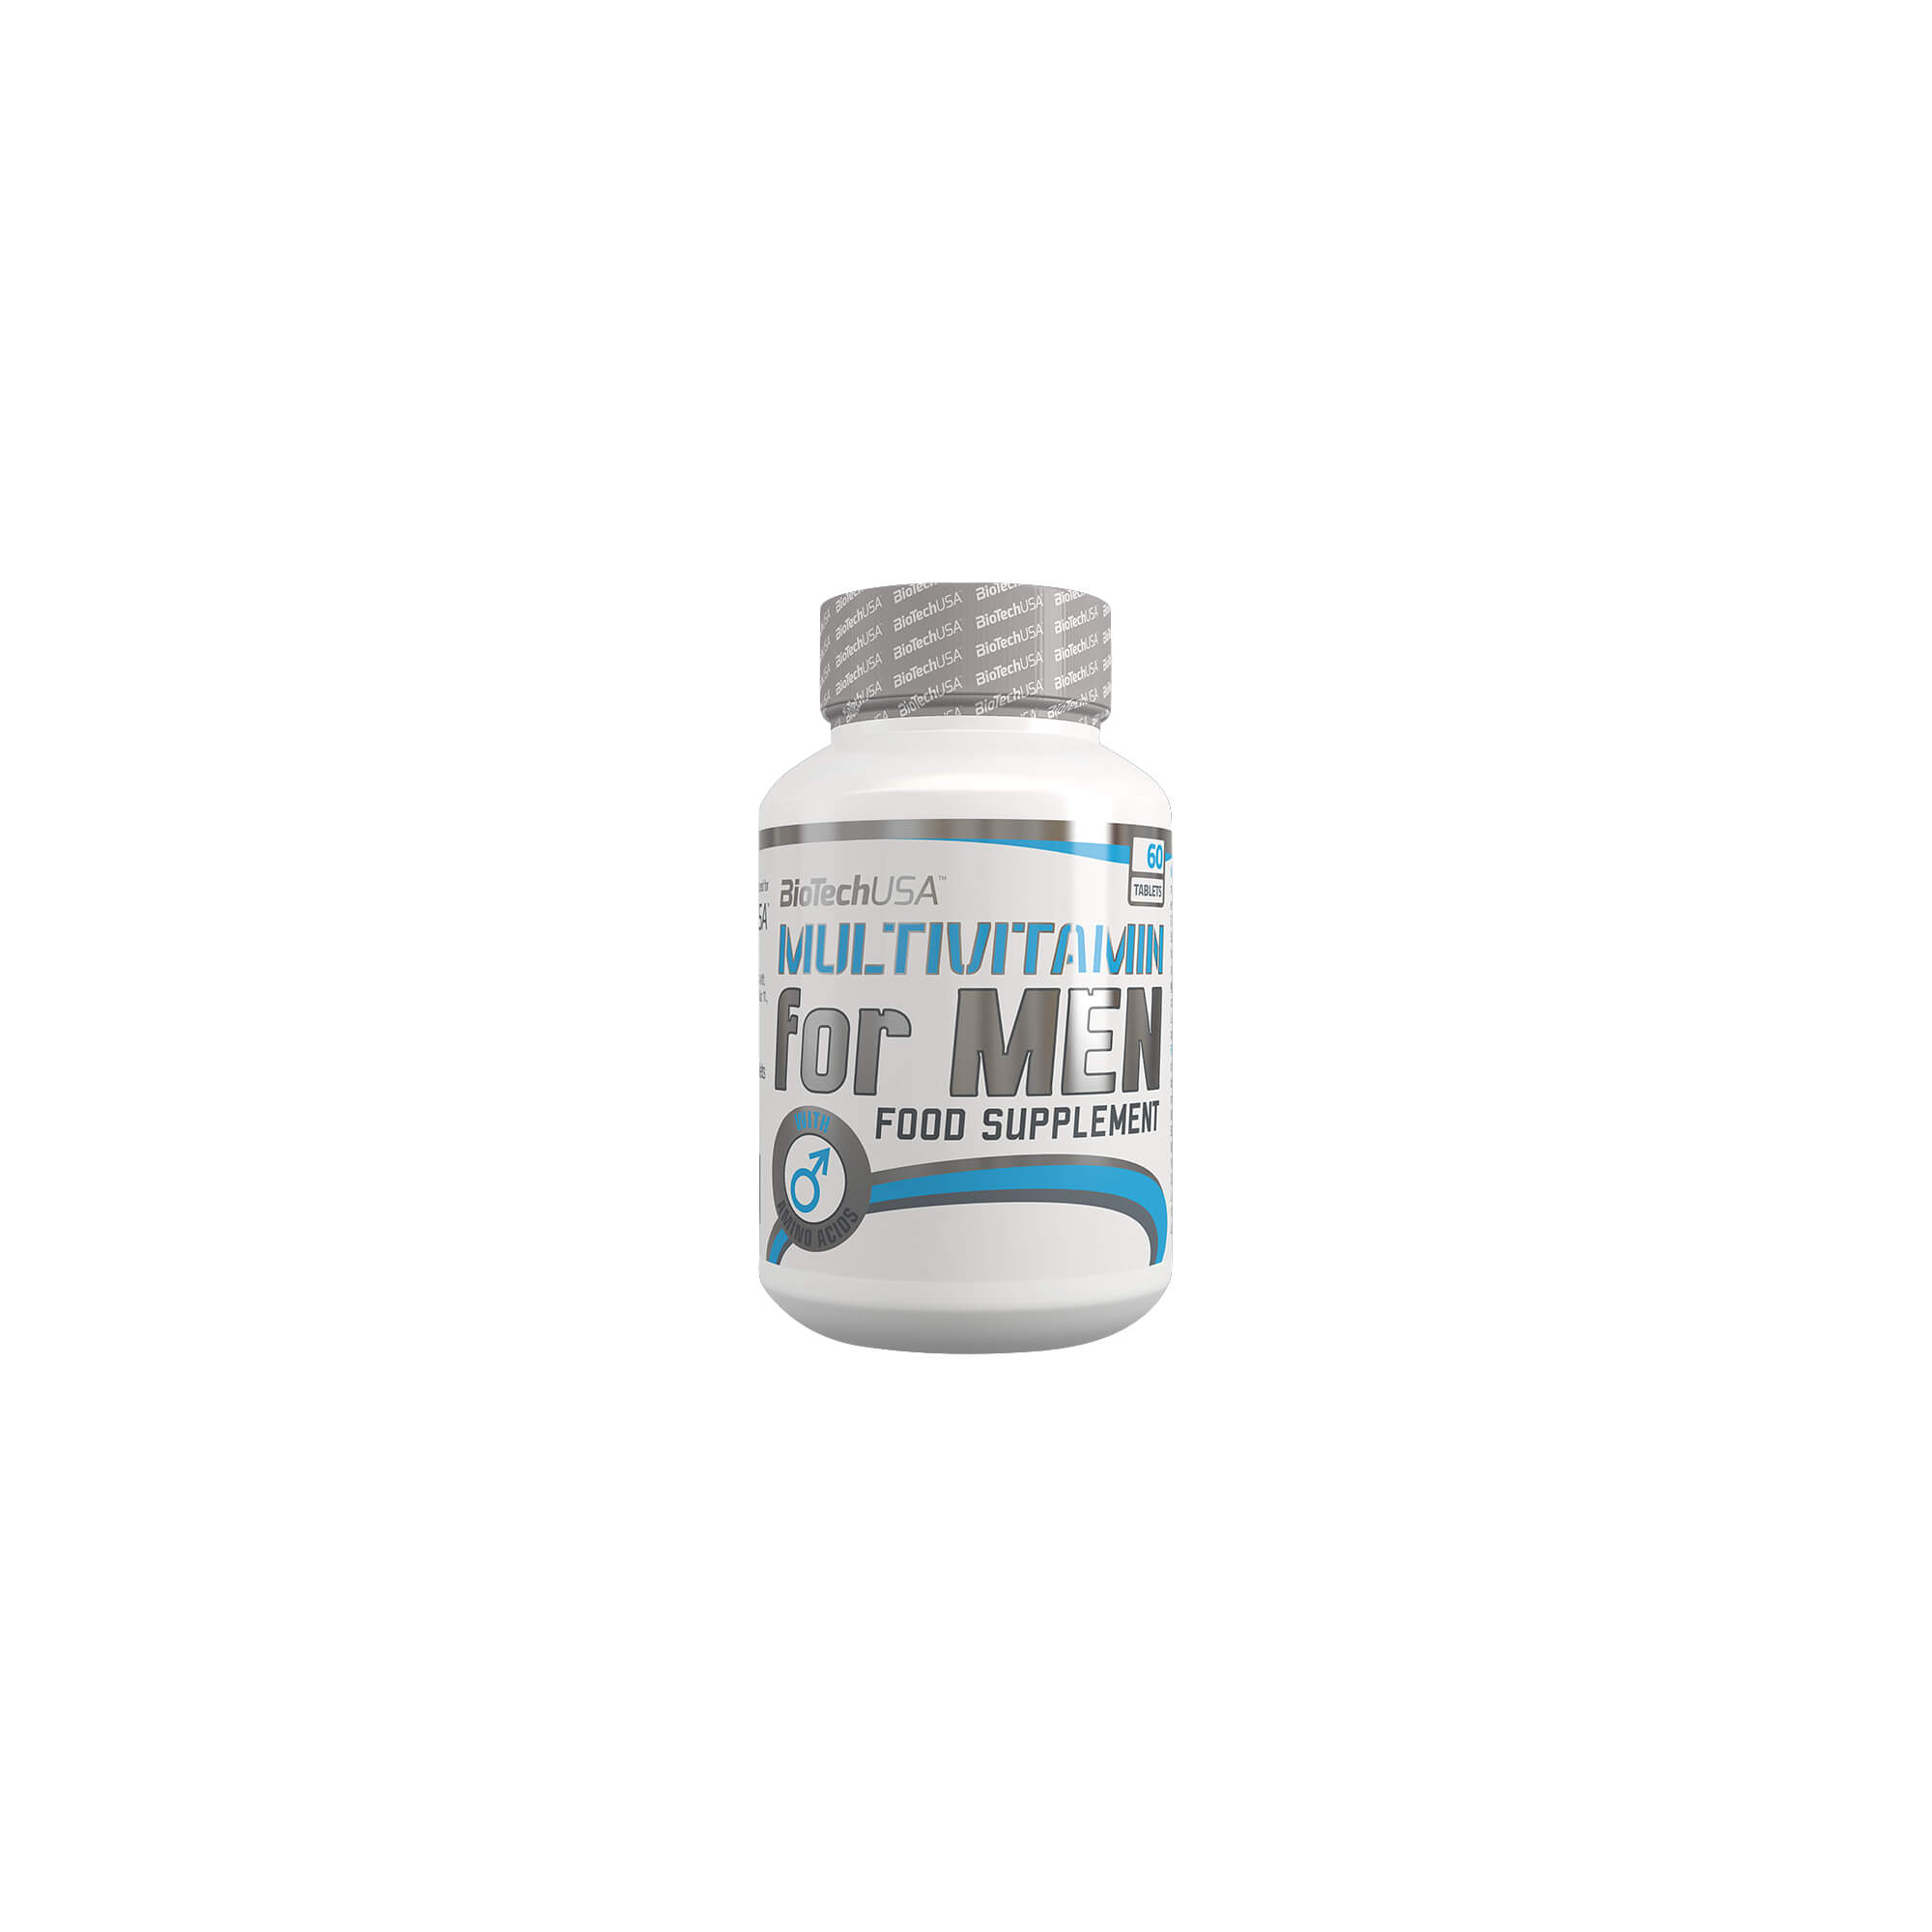 Multivitamin for Men Biotech USA